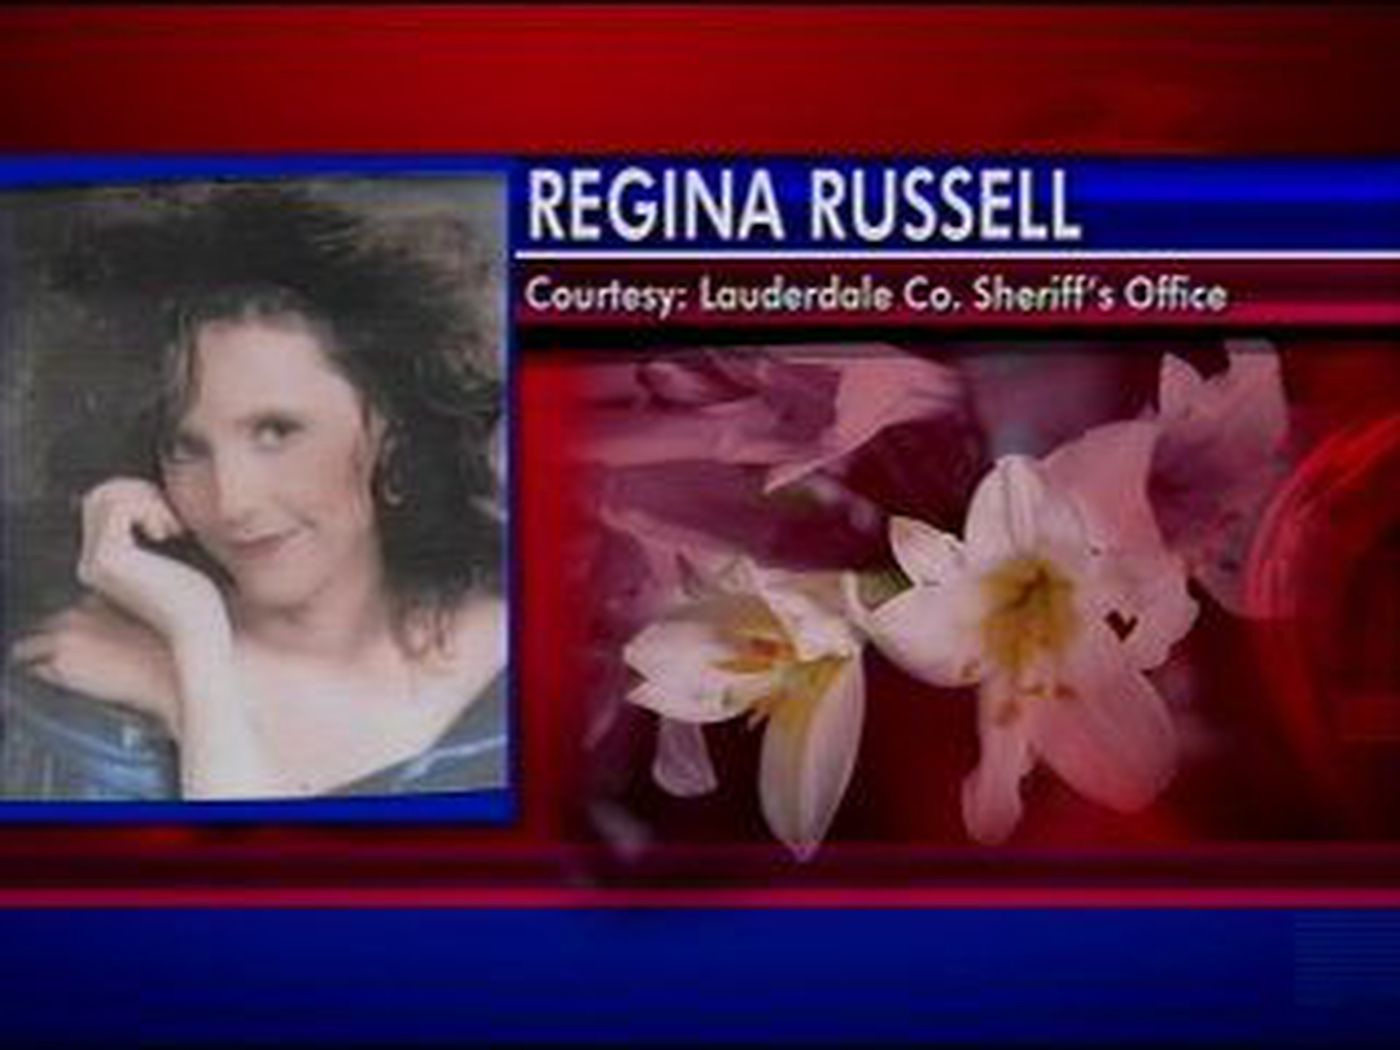 Lauderdale County Sheriff's office says goodbye to murdered